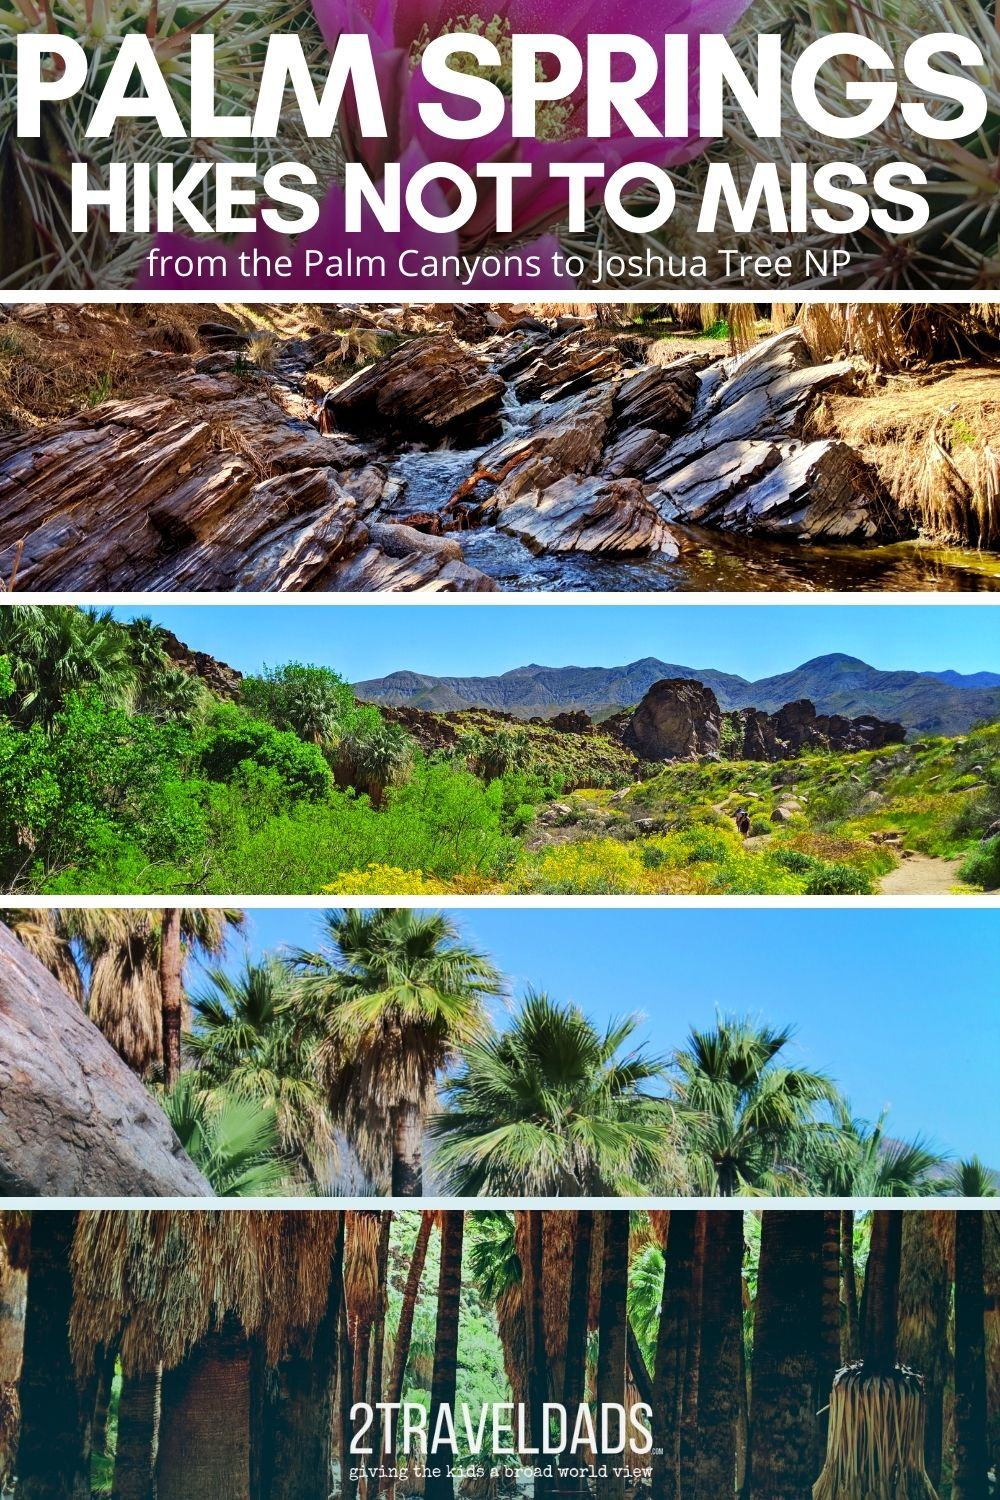 The best hiking in Palm Springs includes palm forests, waterfalls, oasis and desert. Hiking trails and tips for exploring the canyons, Coachella Valley and Joshua Tree National Park.